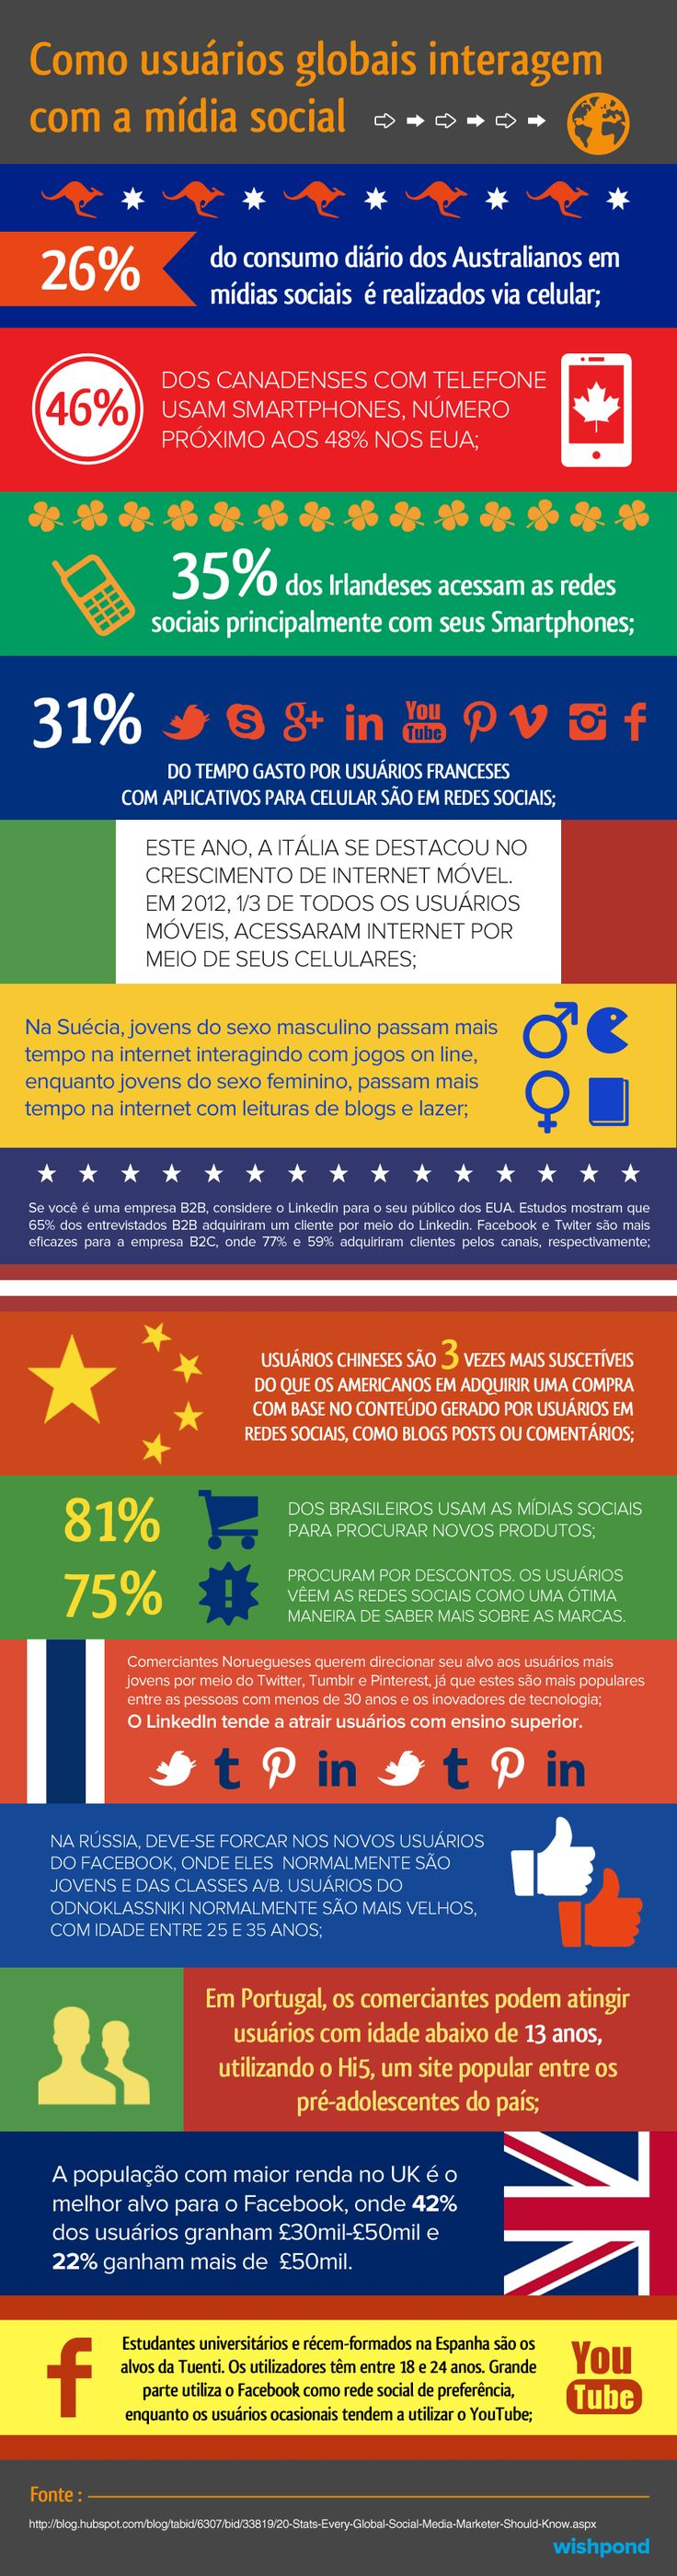 Infographic_global_BR-1.png (900×3425)